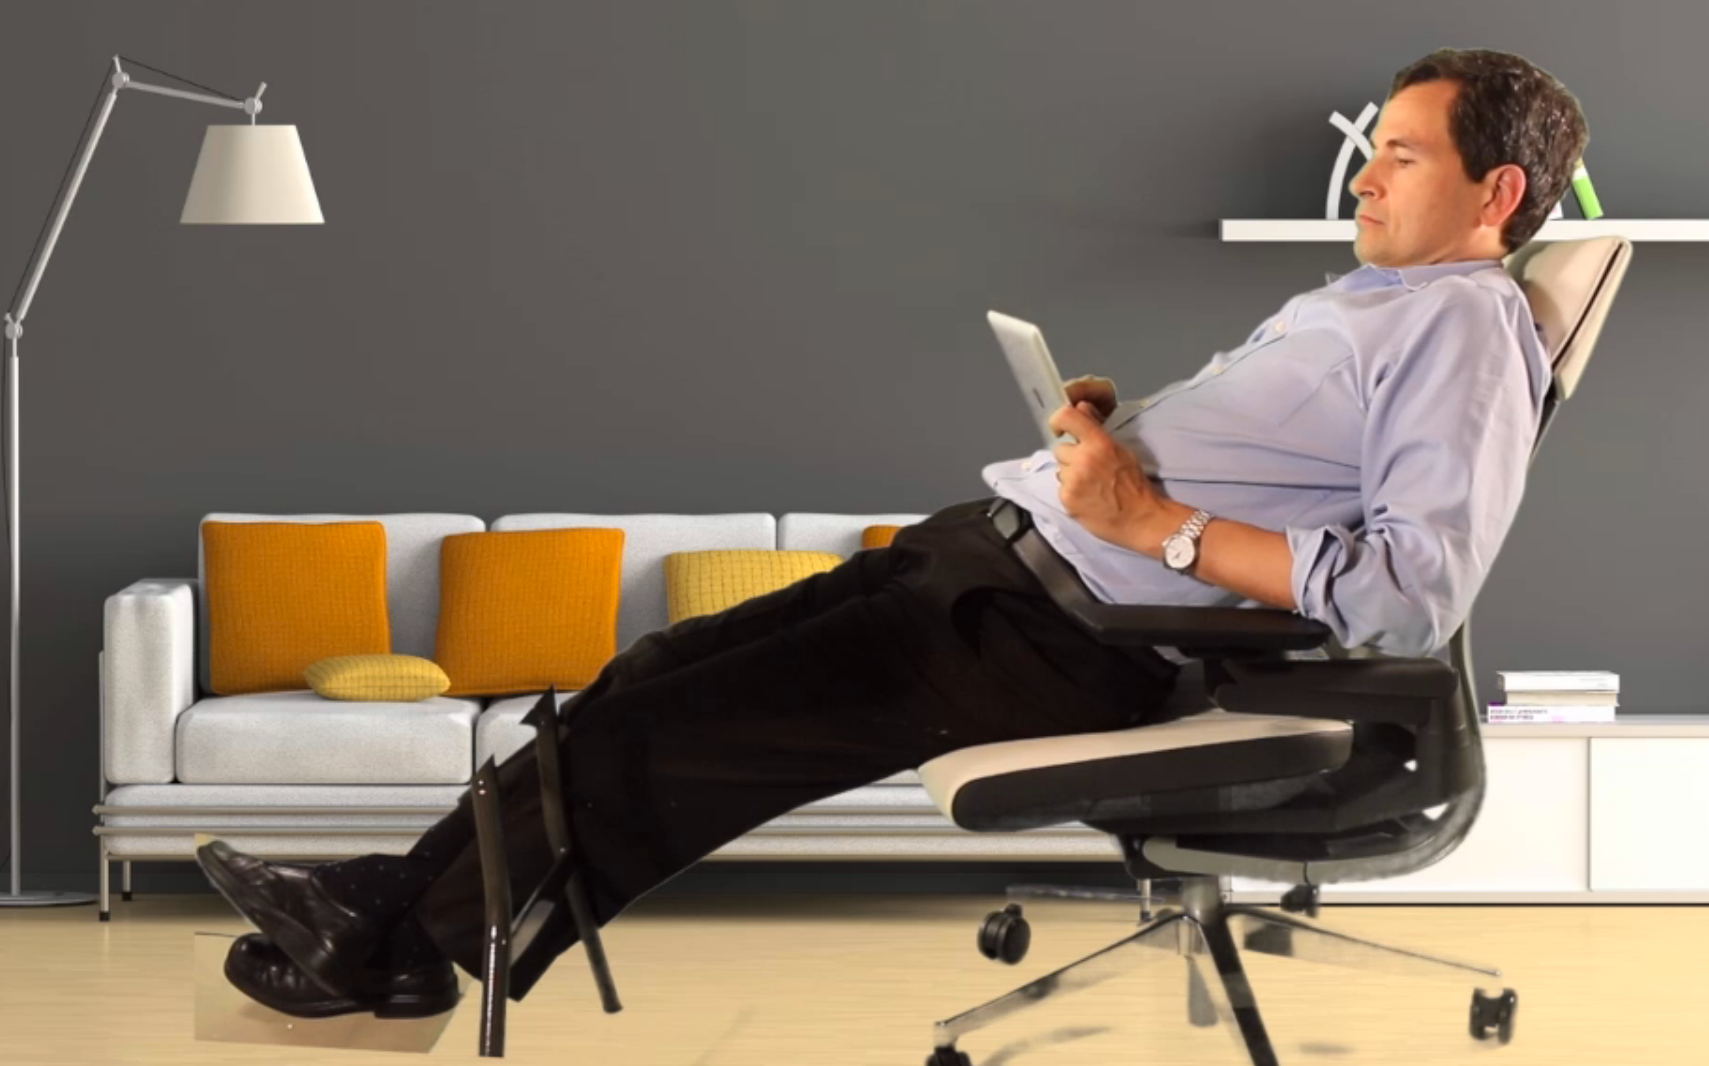 There is no 'right' way to sit